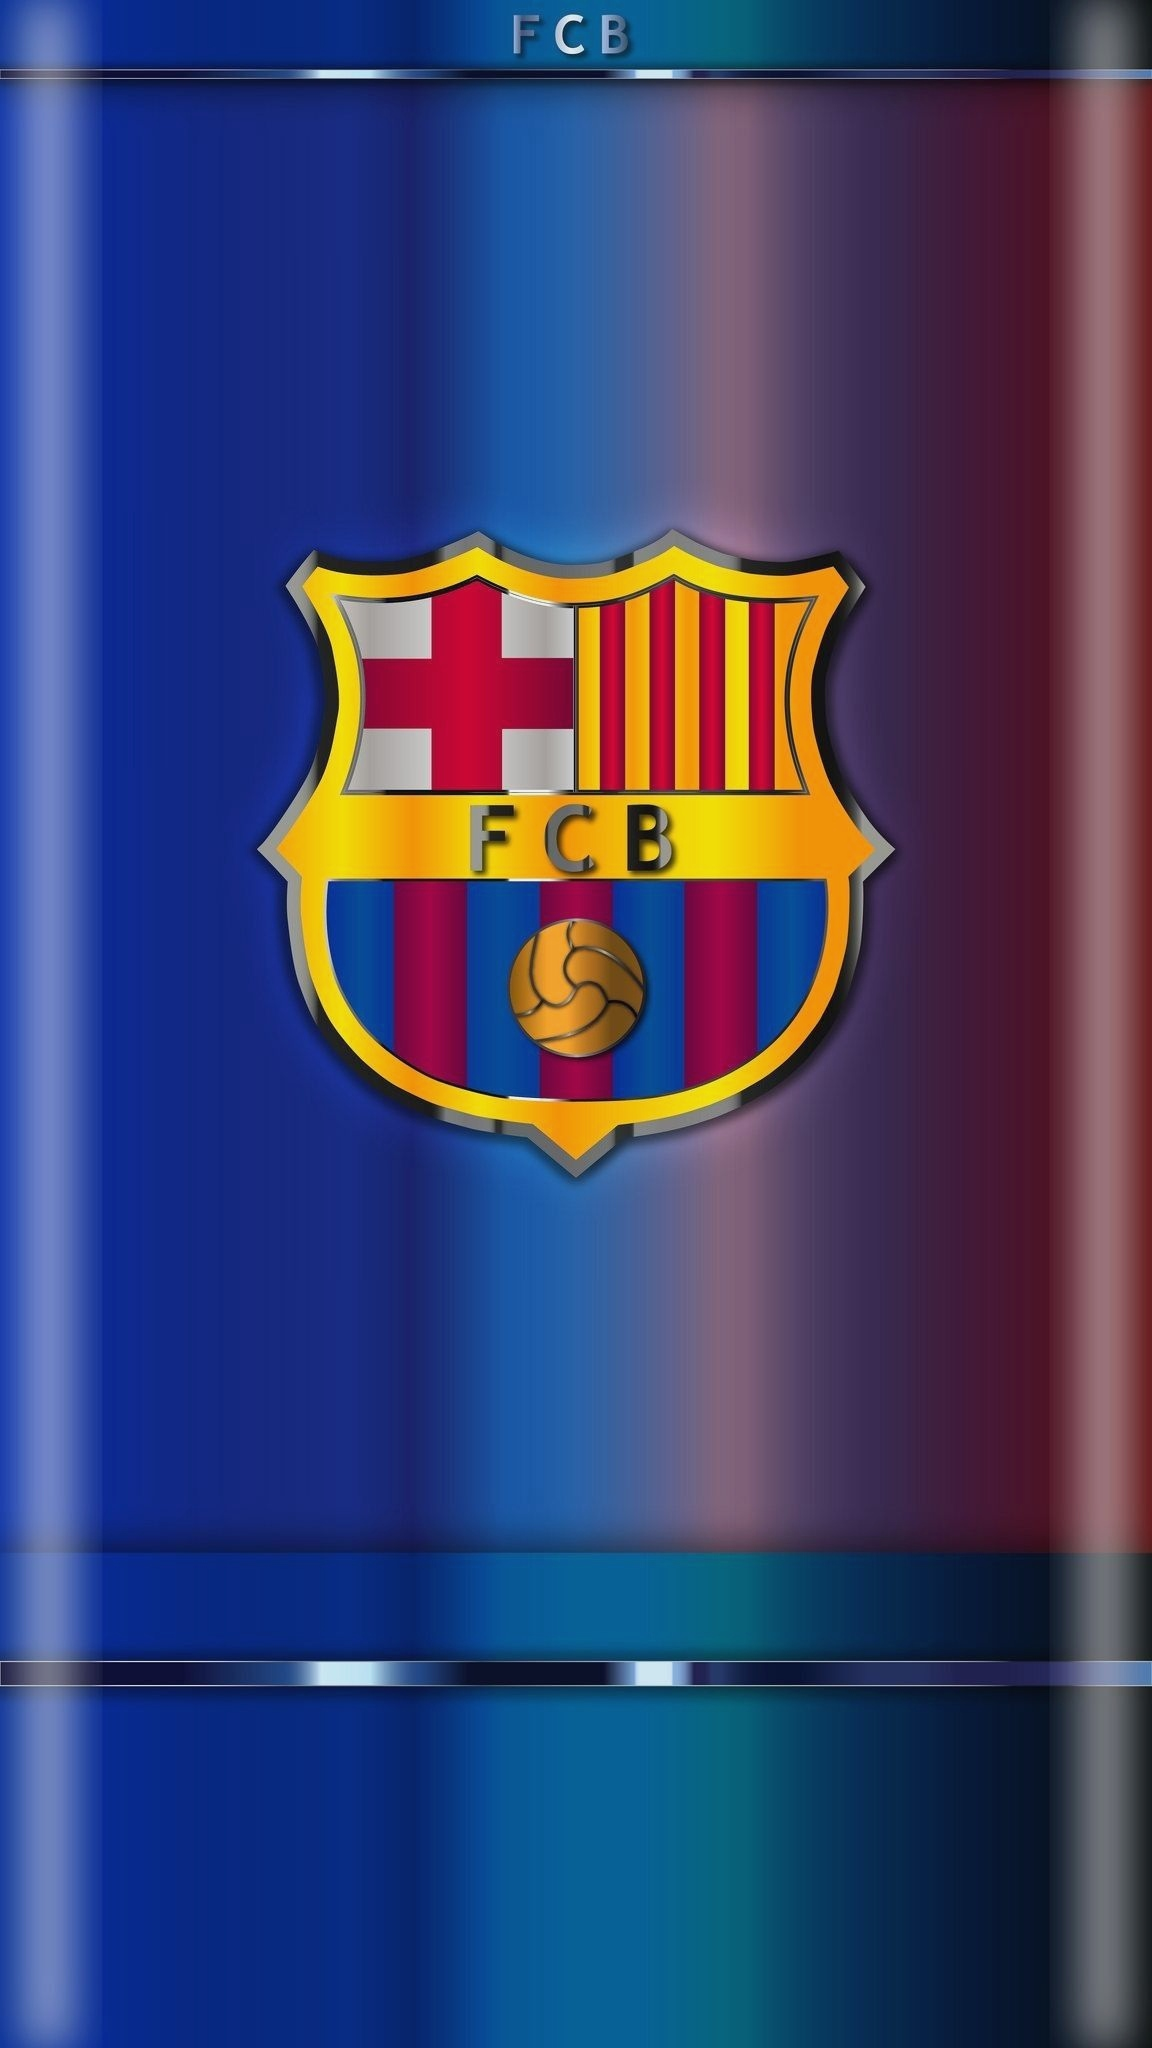 fc barcelona wallpaper 4k 2277807 hd wallpaper backgrounds download fc barcelona wallpaper 4k 2277807